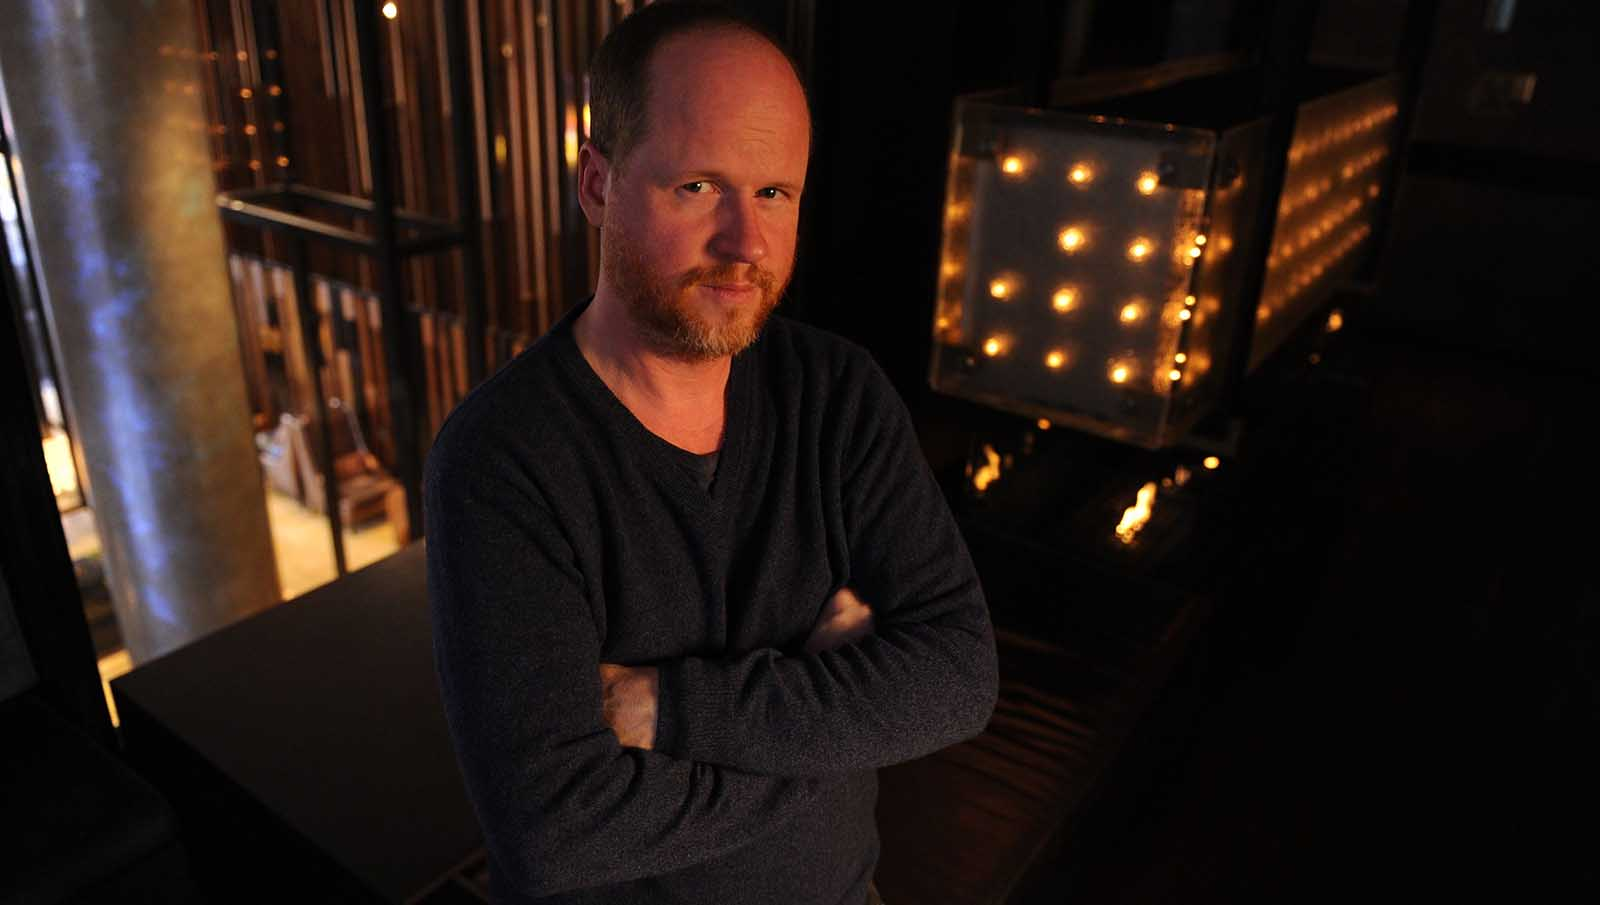 New reports of Joss Whedon's abusive on-set behavior have come out. Now, we ask the question: Should HBO cancel Whedon's new show 'The Nevers'?